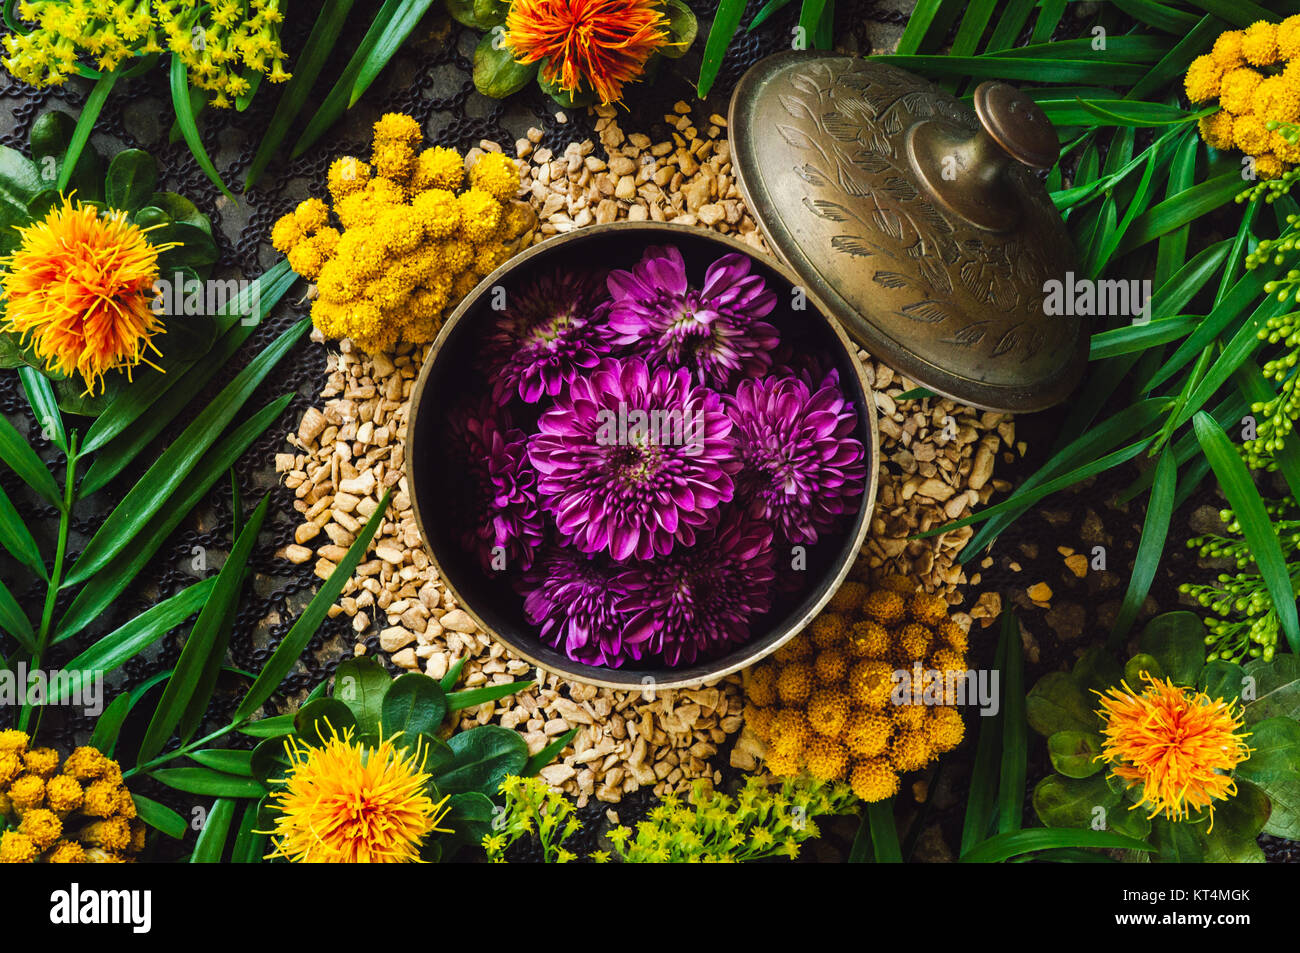 Brass Container with Purple Chrysanthemum Flowers on Ginger Spill - Stock Image